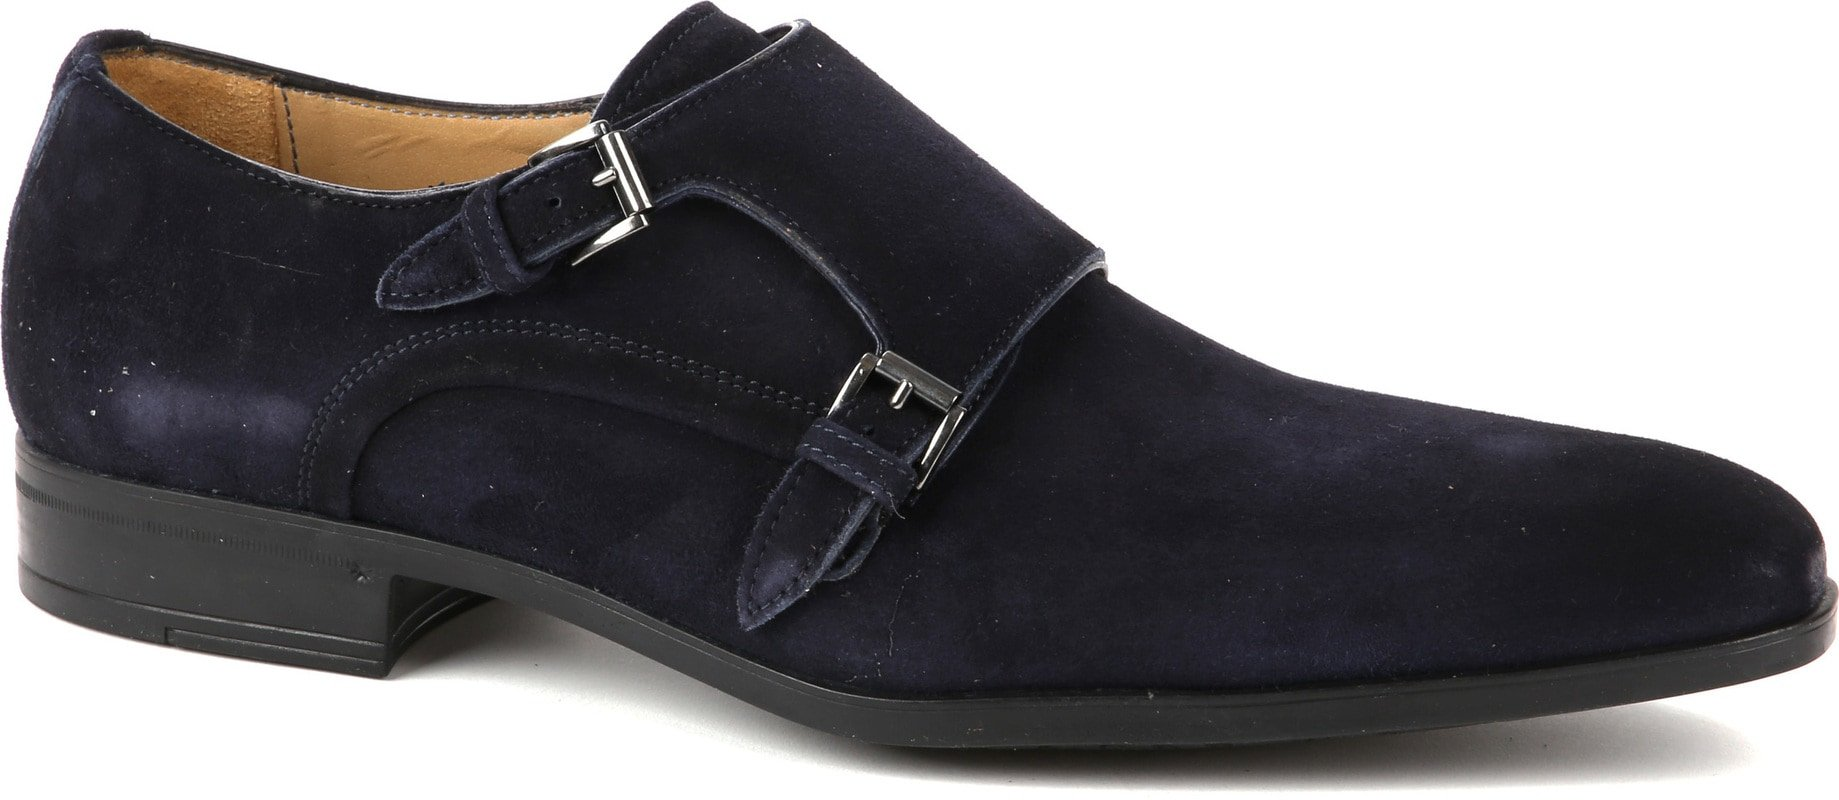 Giorgio Amalfi Shoe Monk Strap Navy photo 0